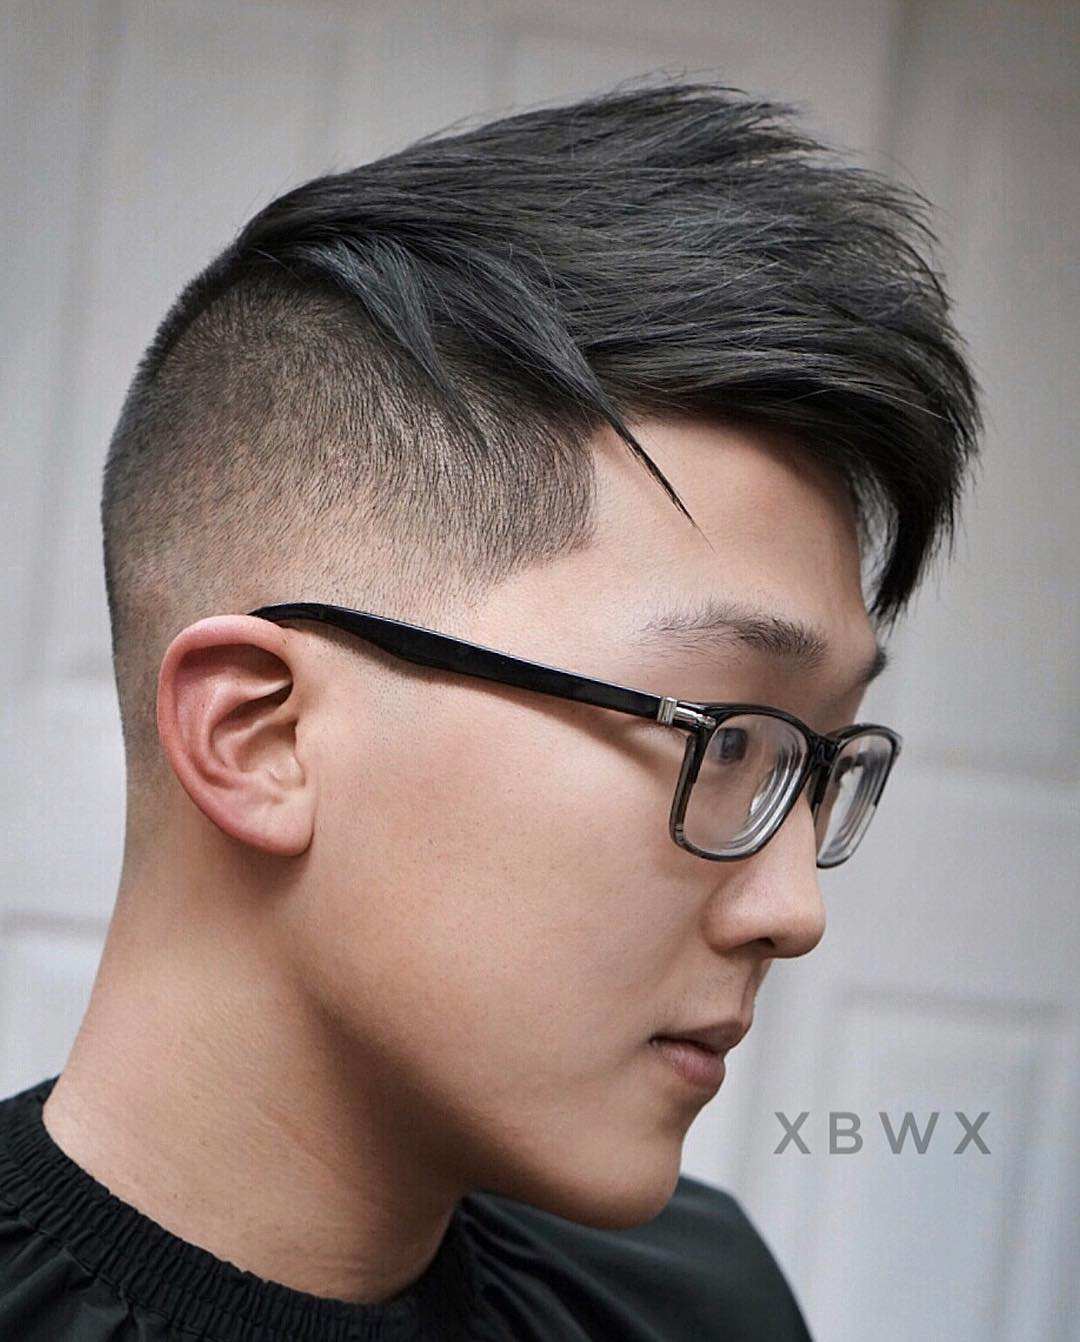 29 Best Hairstyles For Asian Men (2020 Styles)